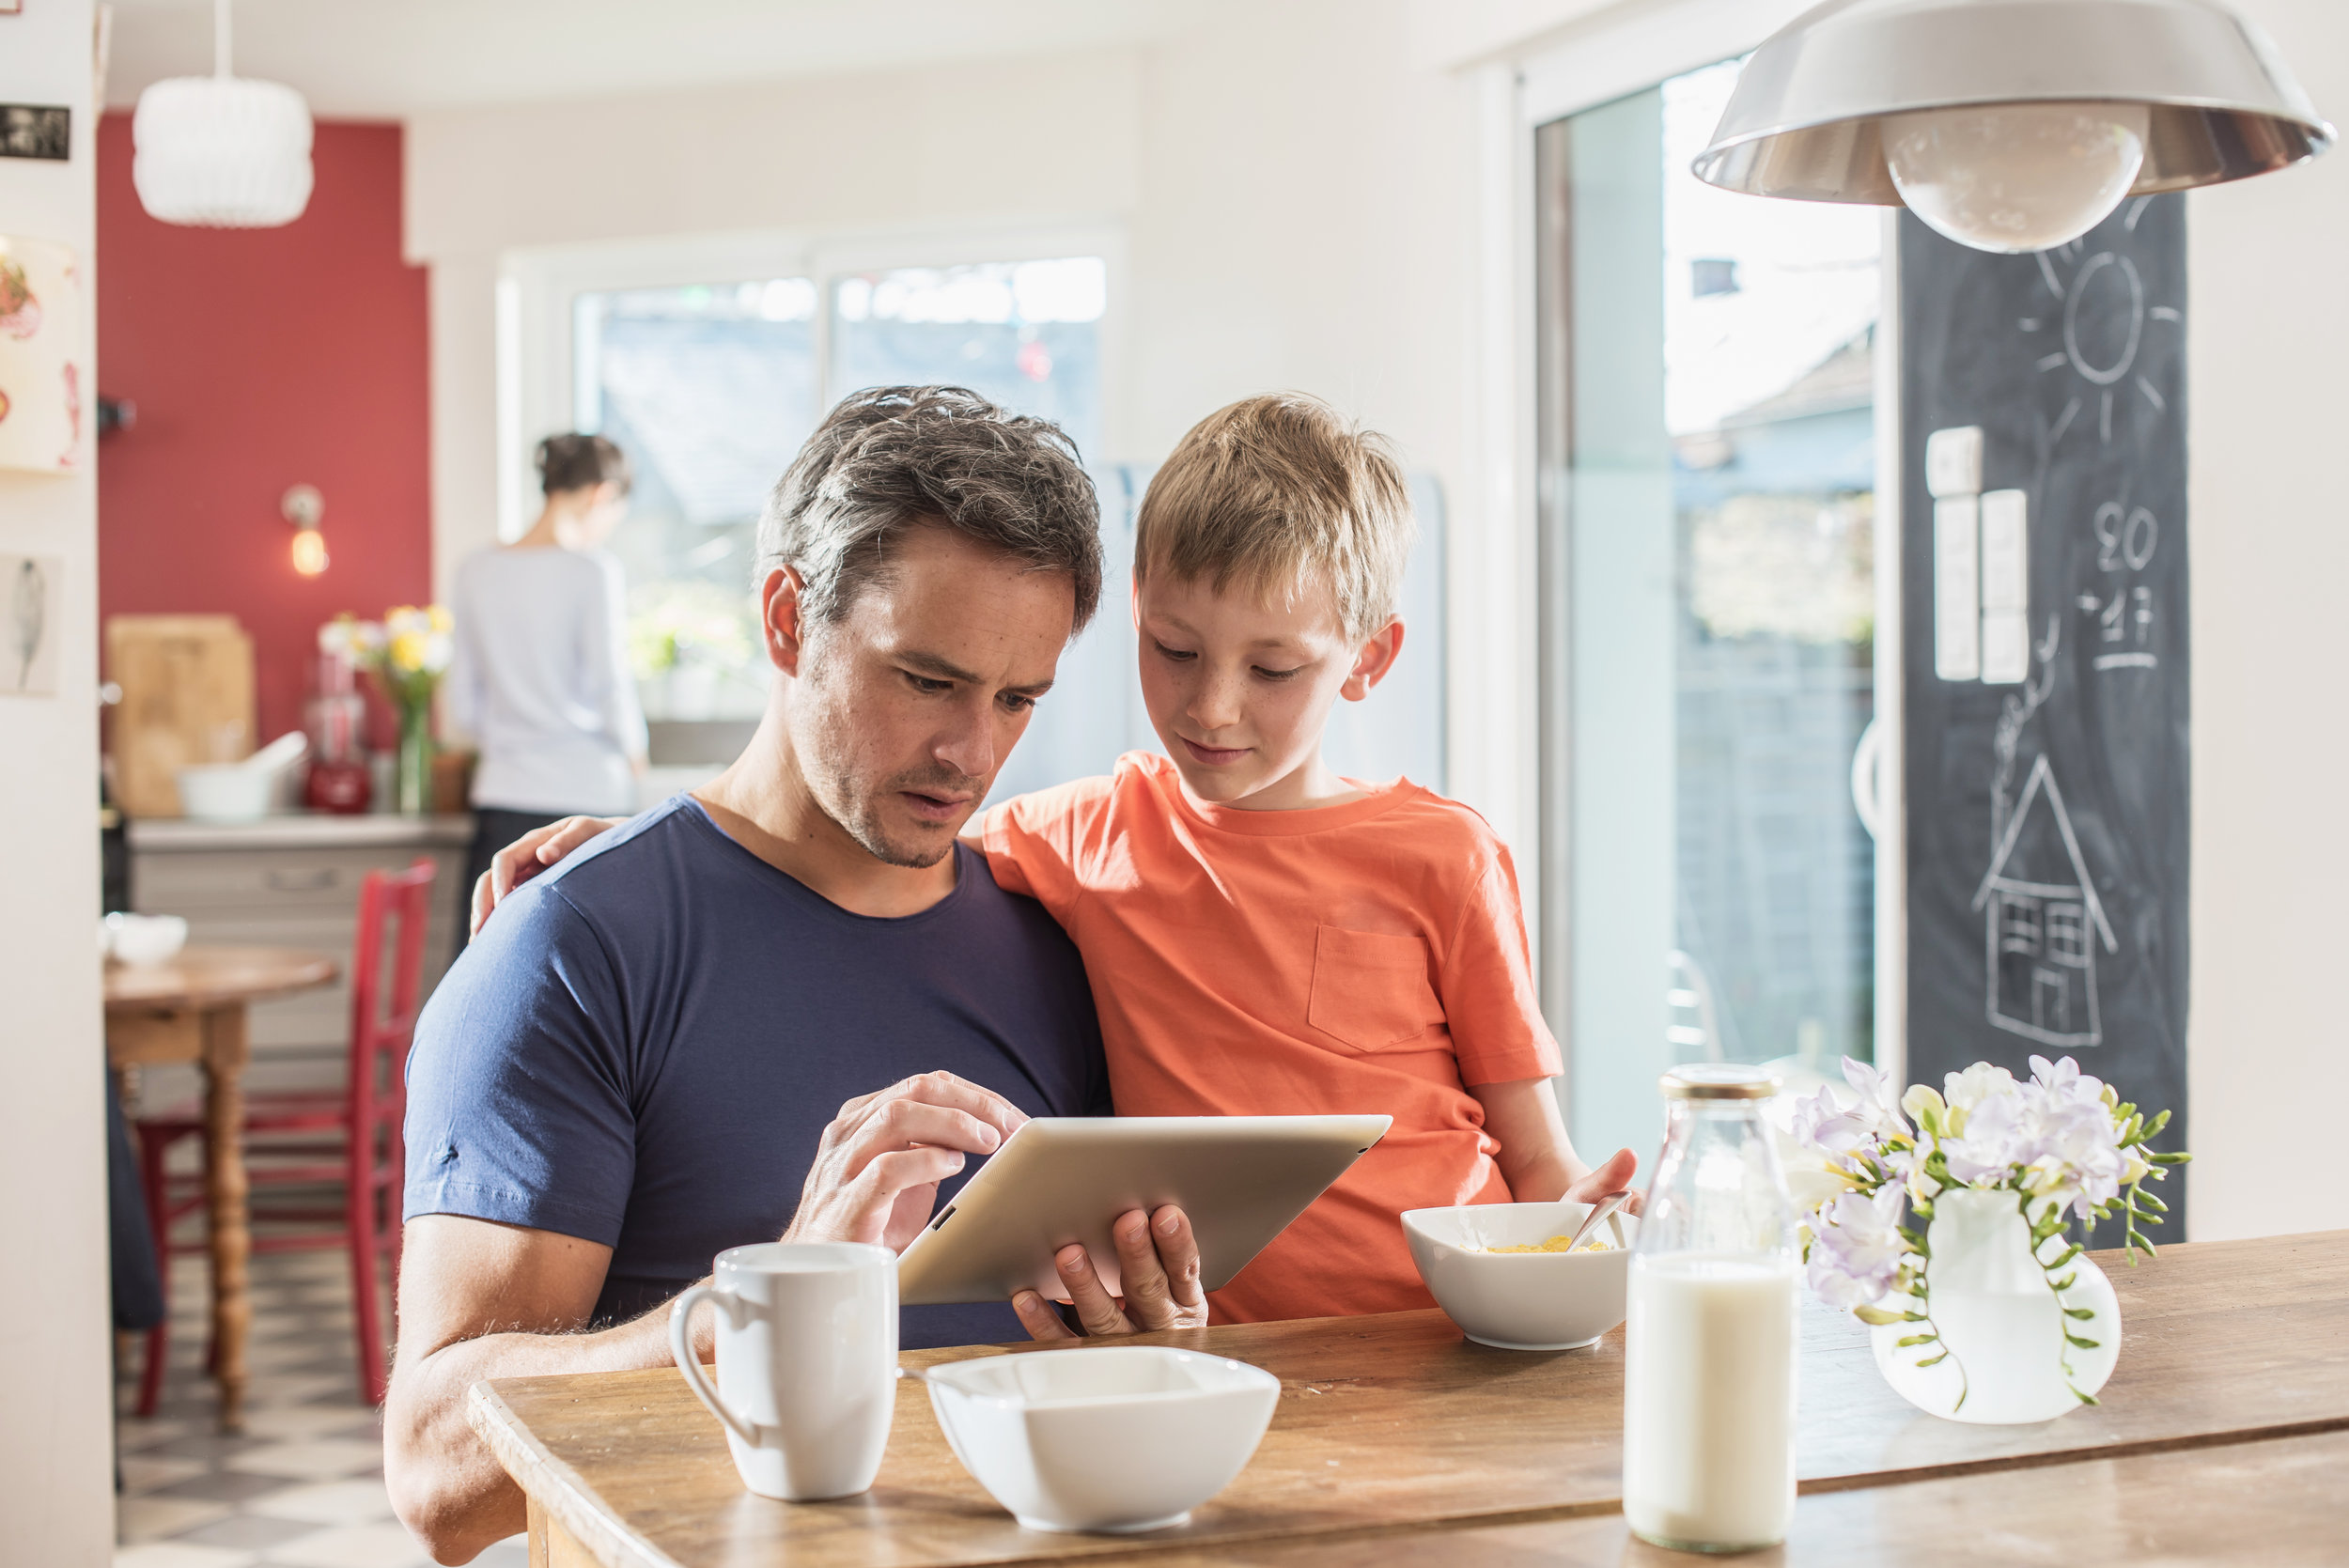 Father showing his son a webpage which features a Chatbot